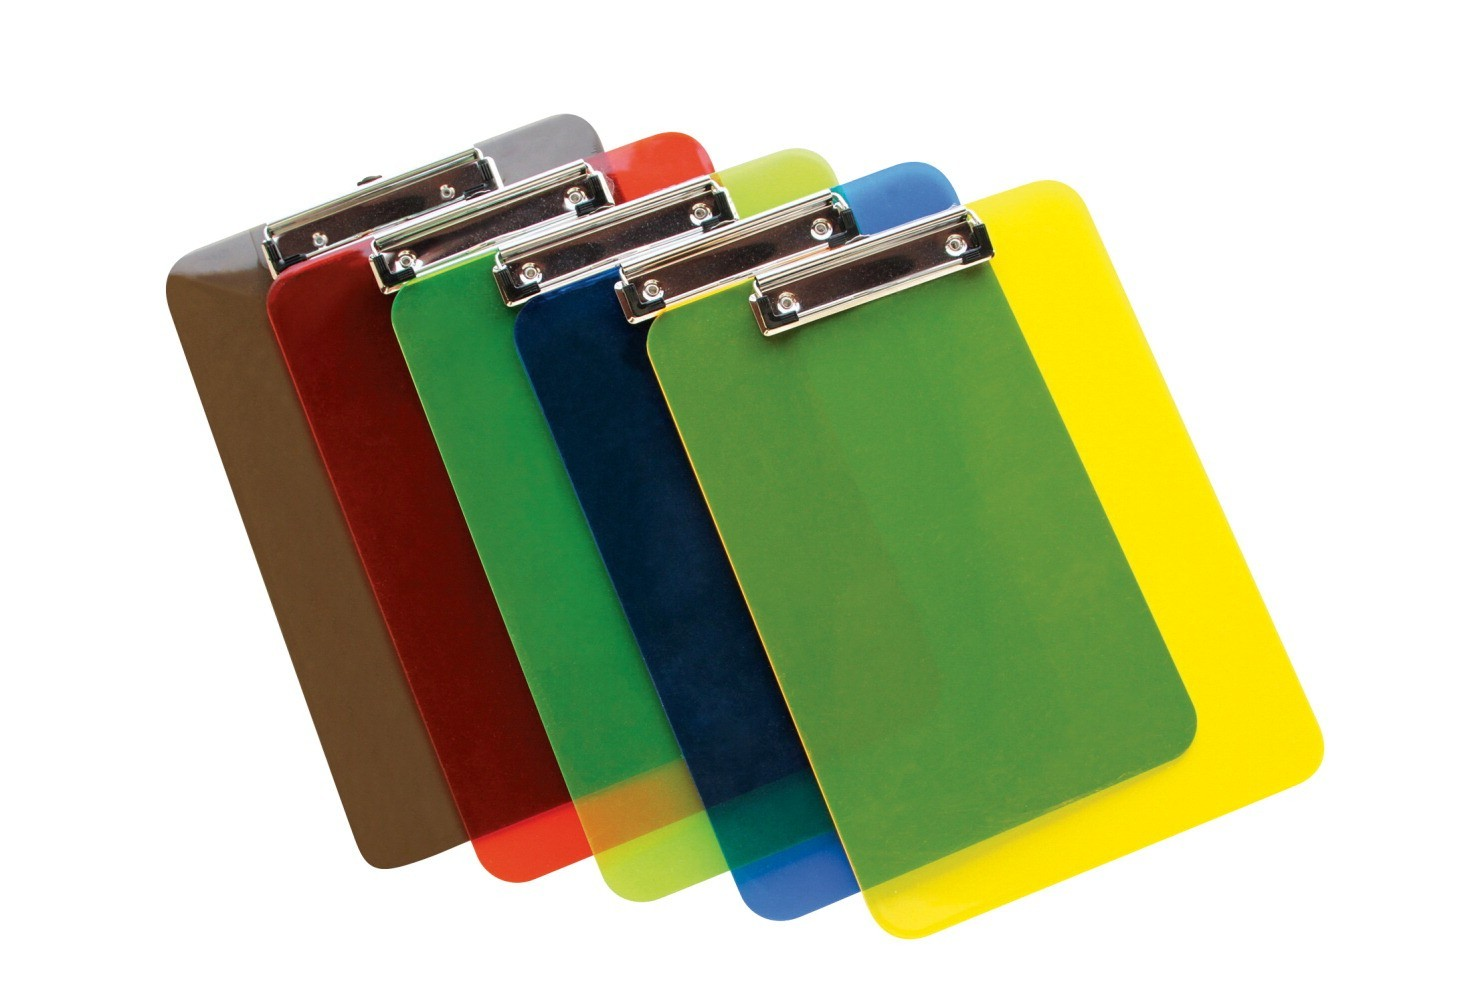 "12-3/8 X 8-7/8"", Clipboard, Translucent Plastic, Colors May Vary"